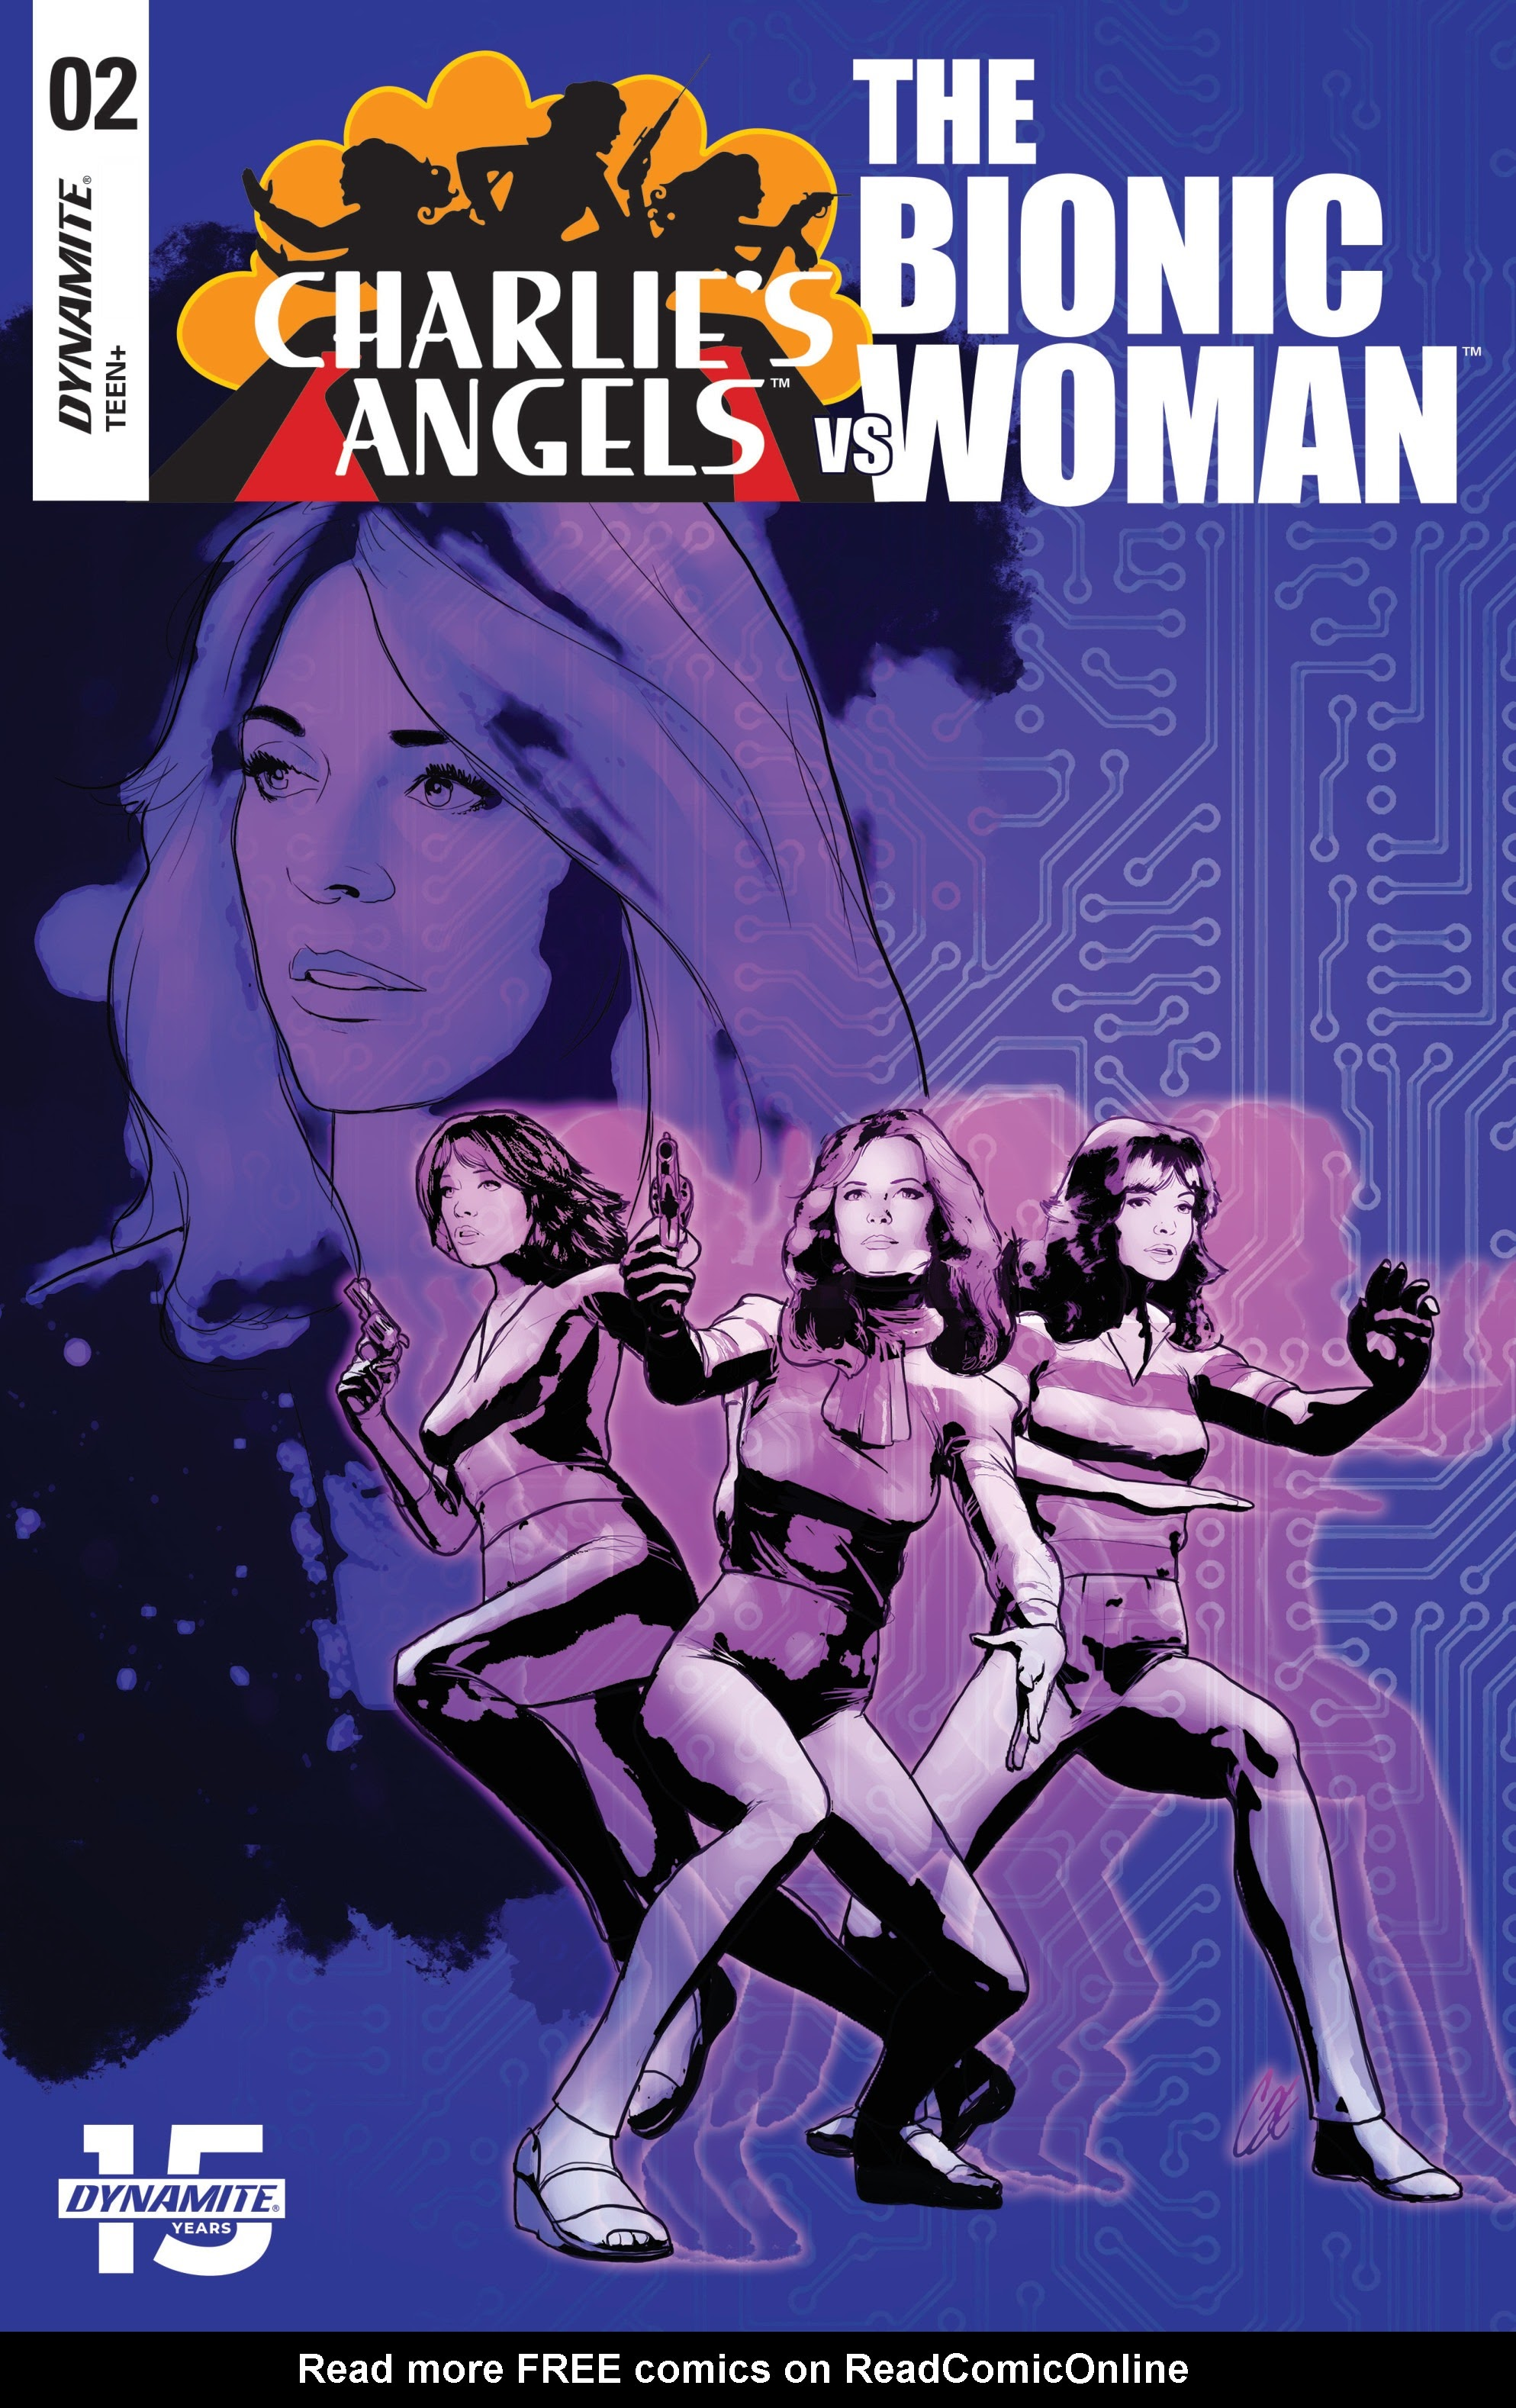 Charlies Angels vs. The Bionic Woman 2 Page 1